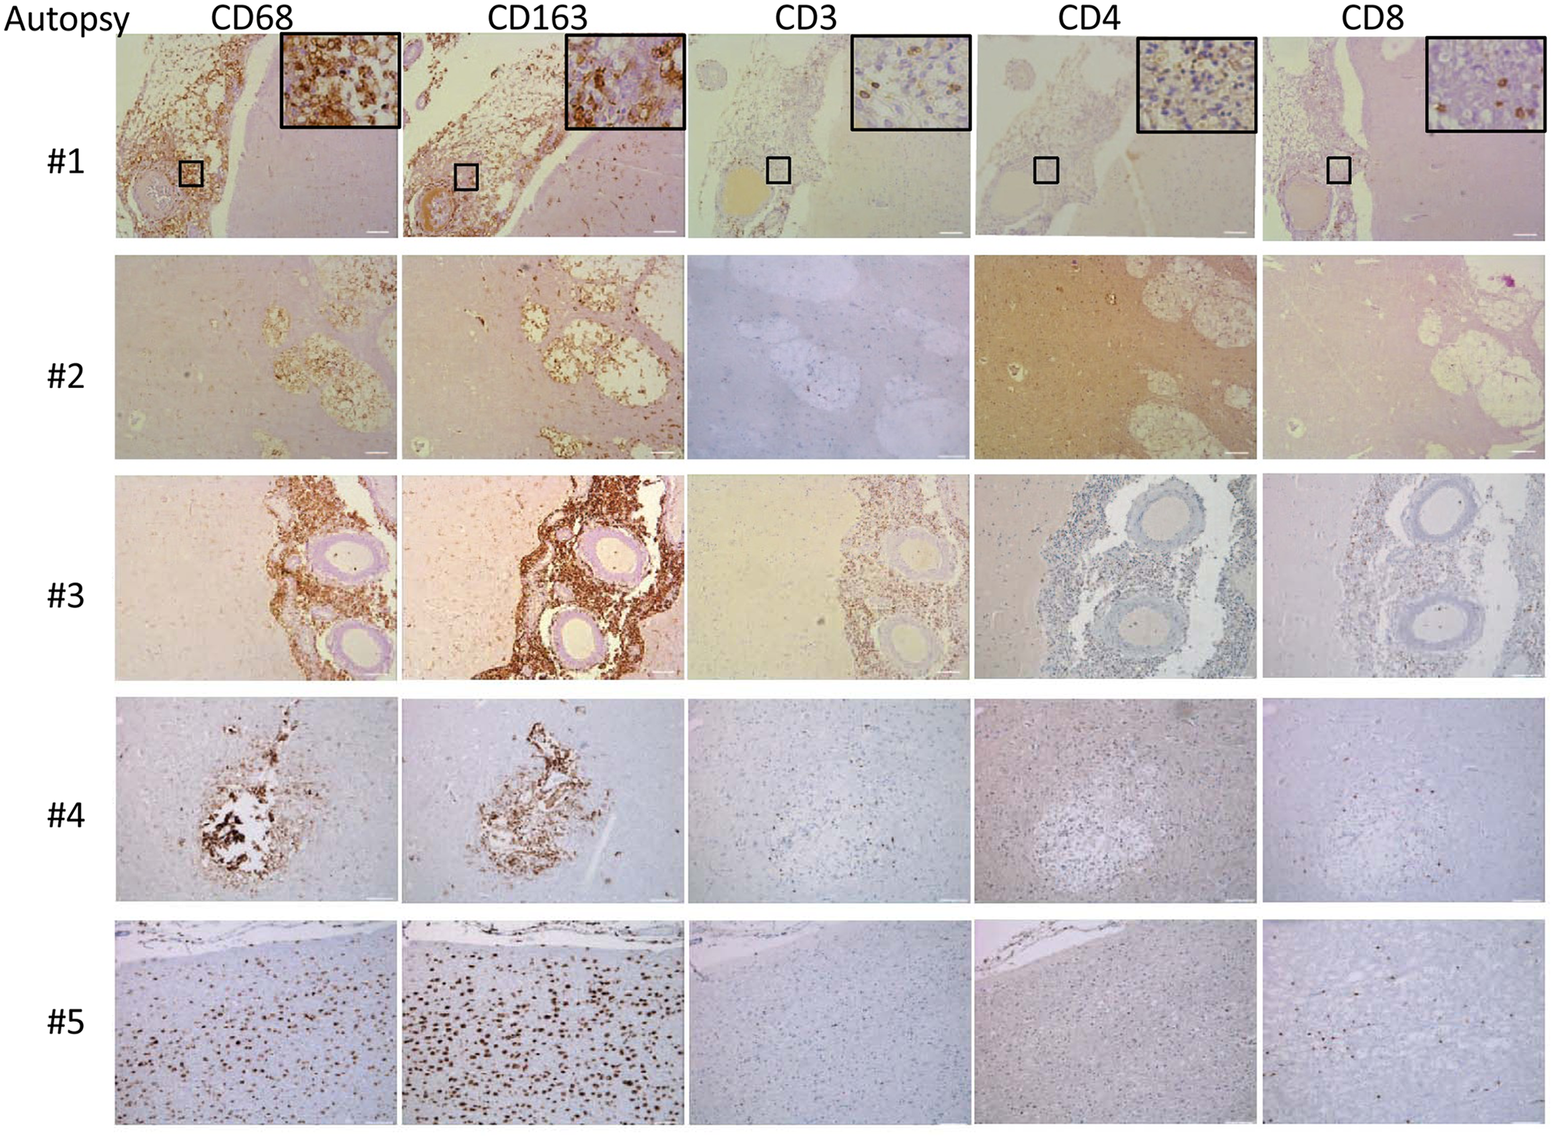 Brain immunohistochemistry staining of brain autopsy specimens from patients who died of s-CNS cryptococcosis demonstrate macrophage and T-cell tissue infiltration.